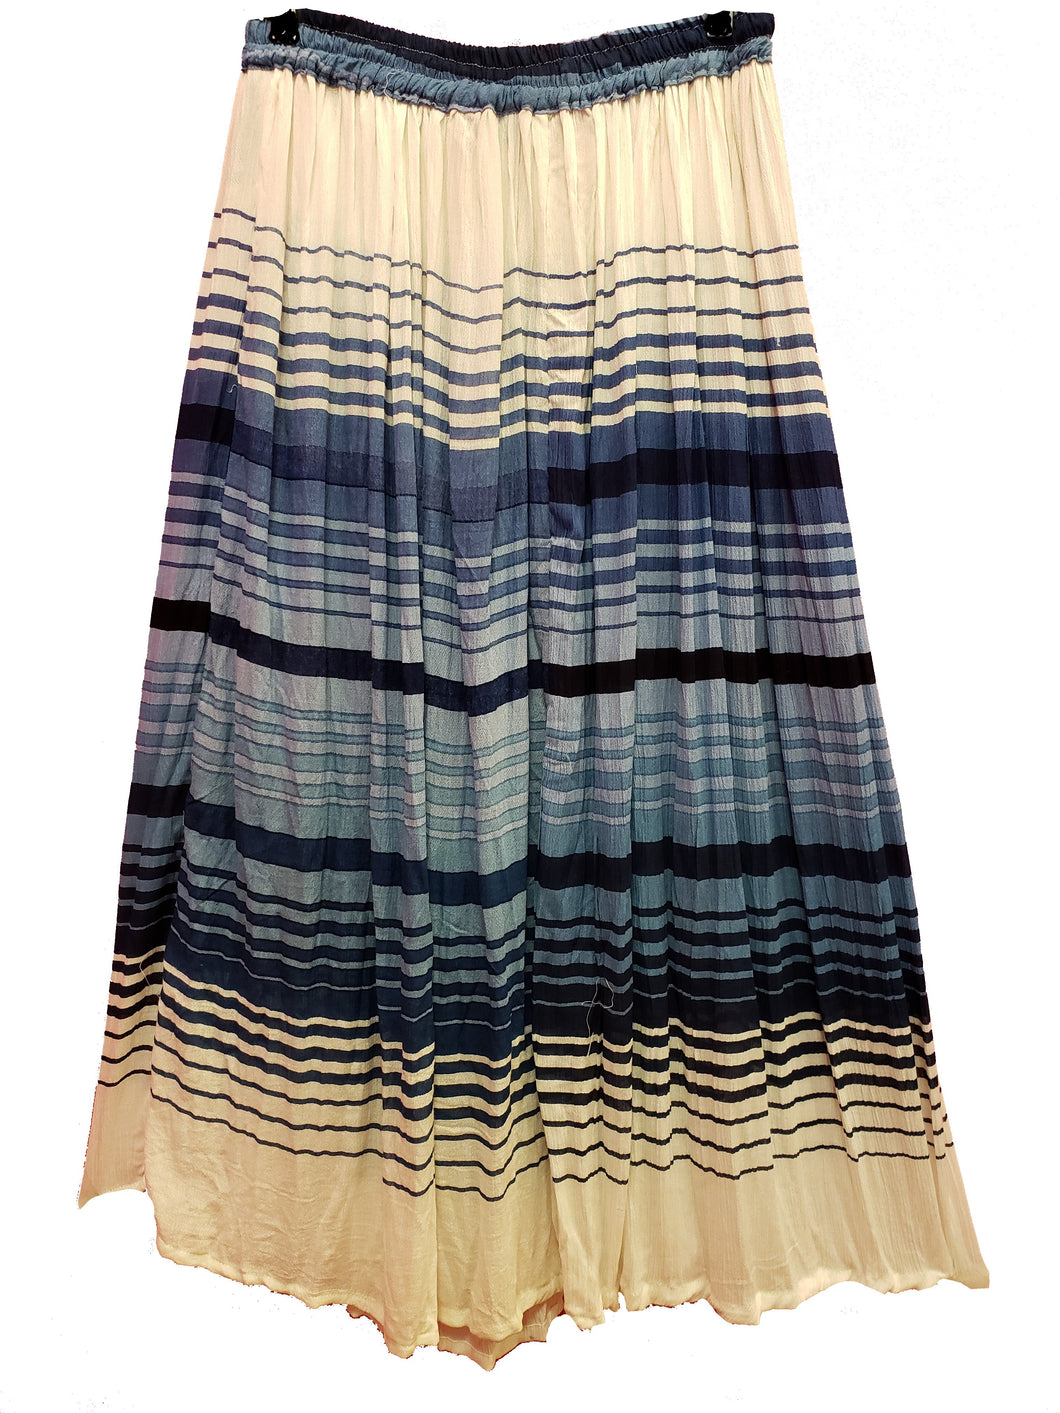 Rayon Skirt - R1014 - CeCe Fashion Boutique